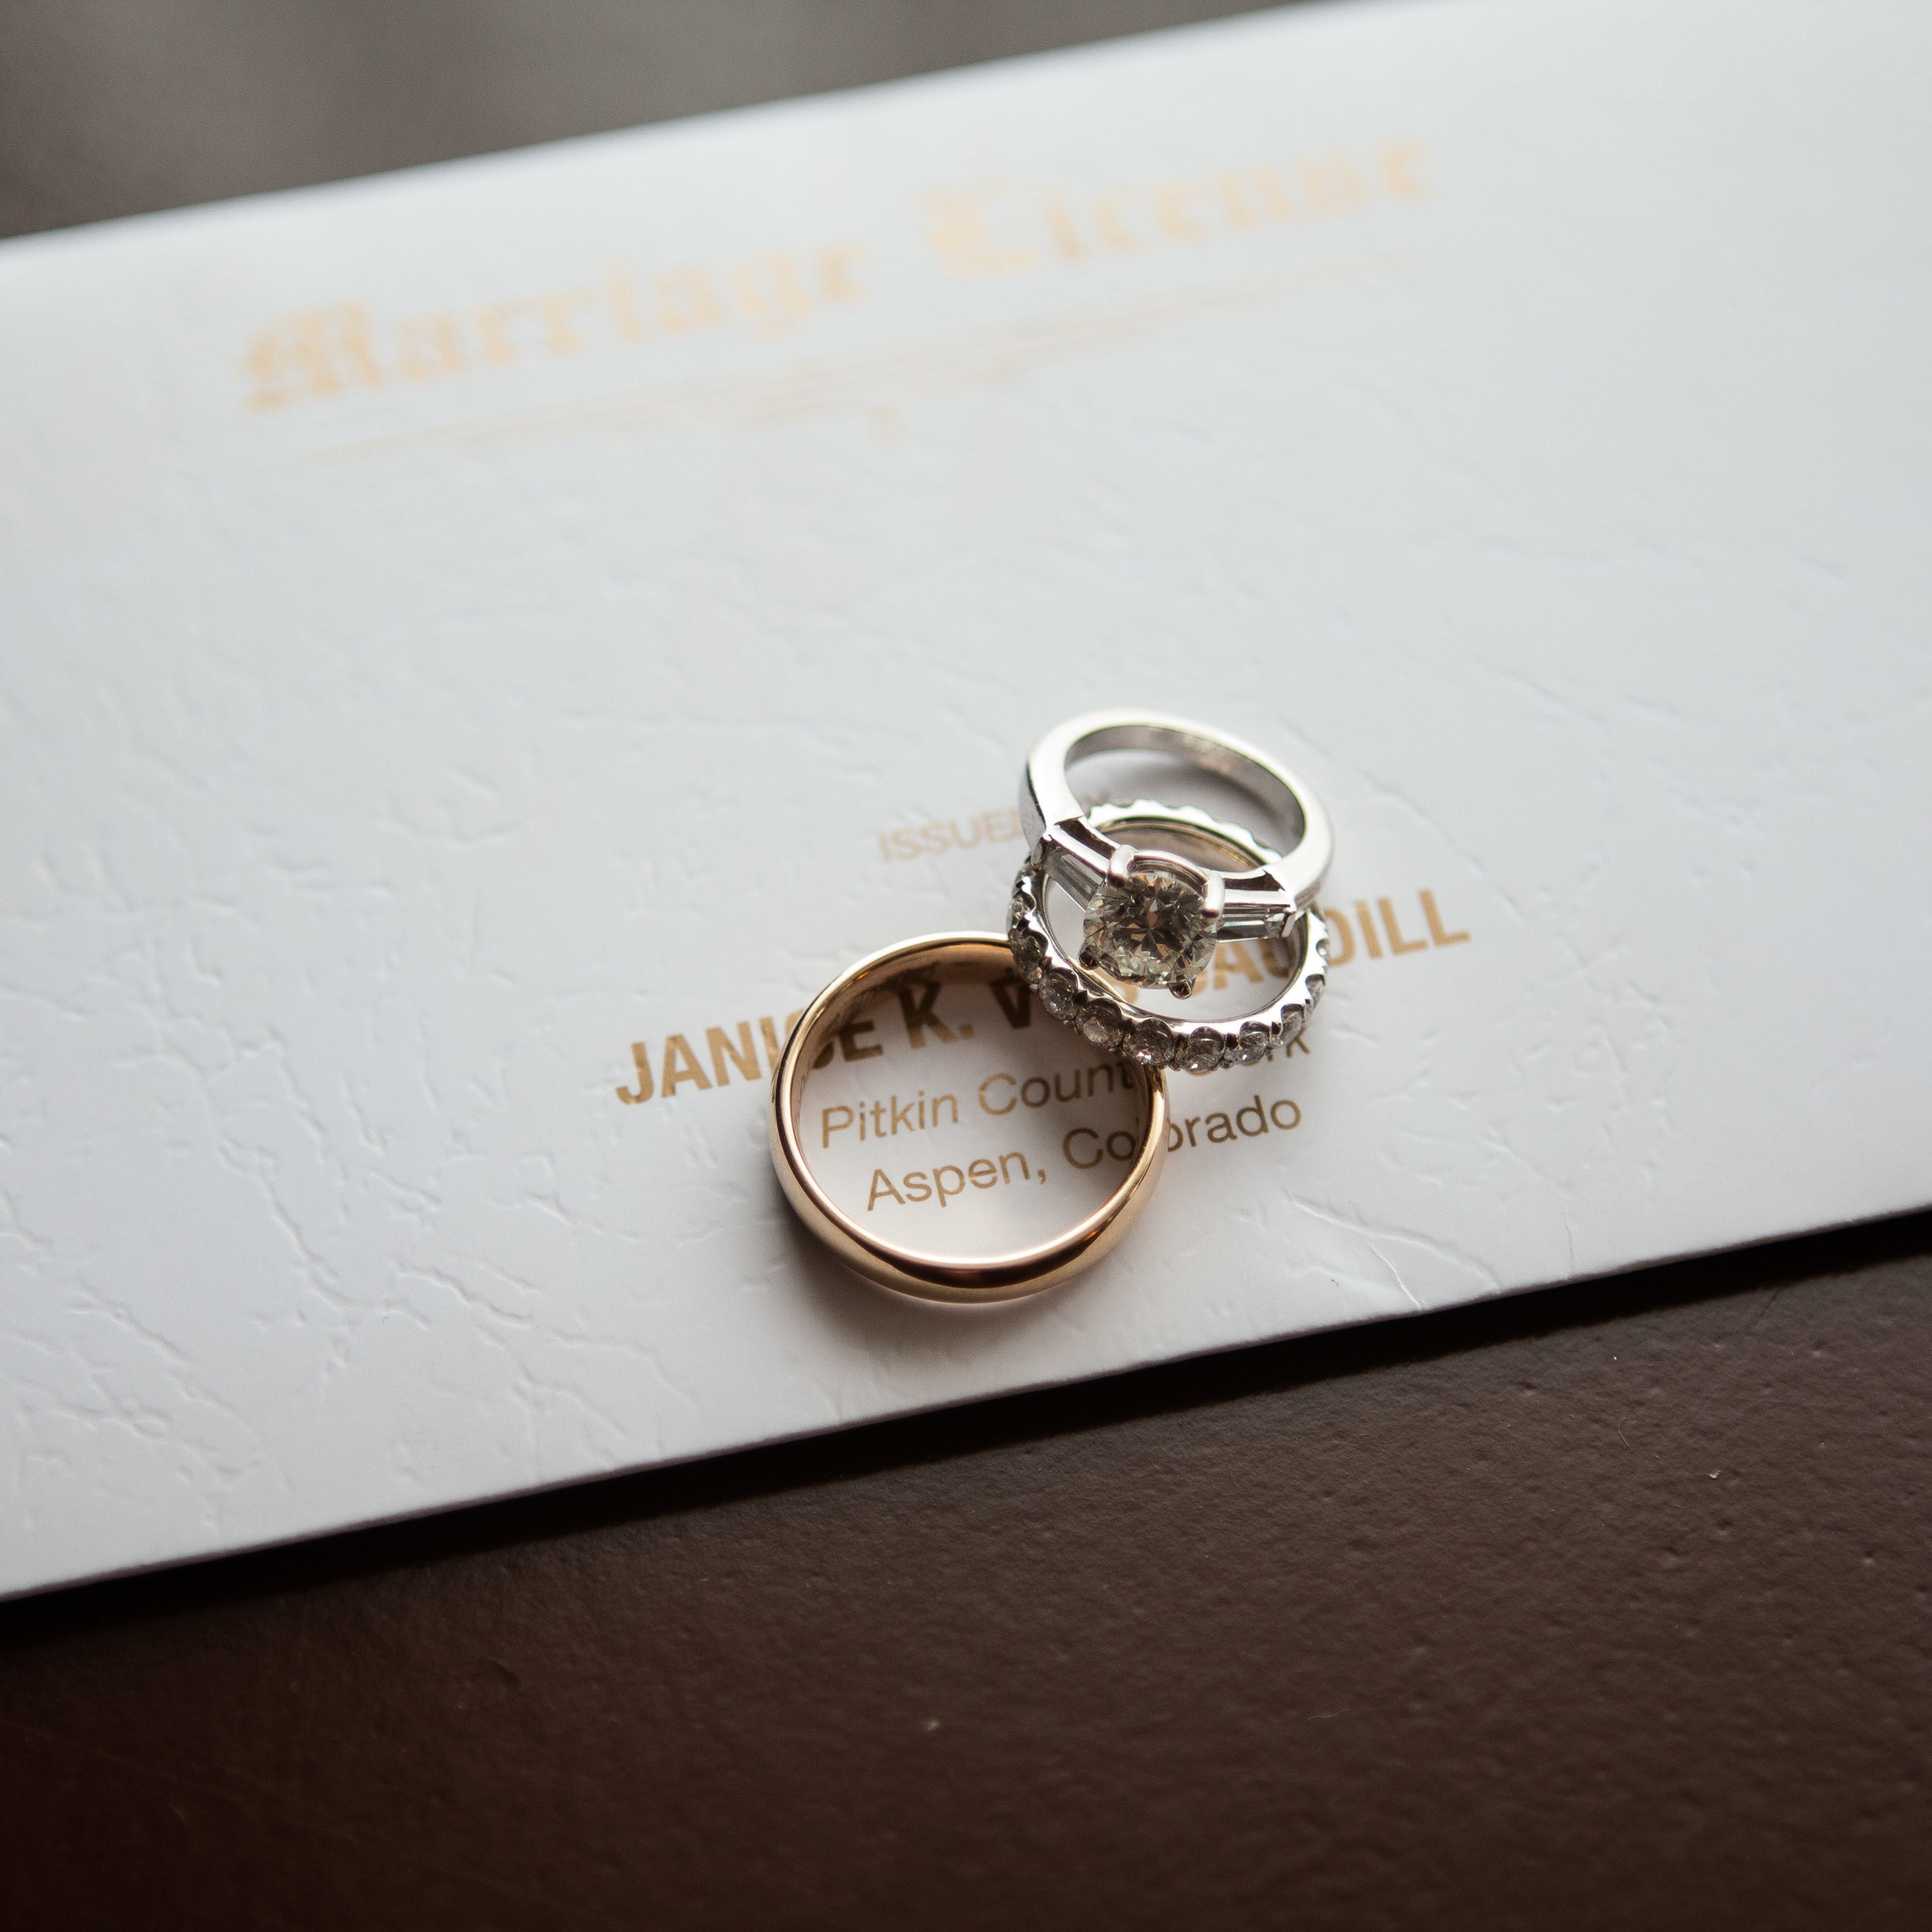 Wedding Rings On Top of Marriage License